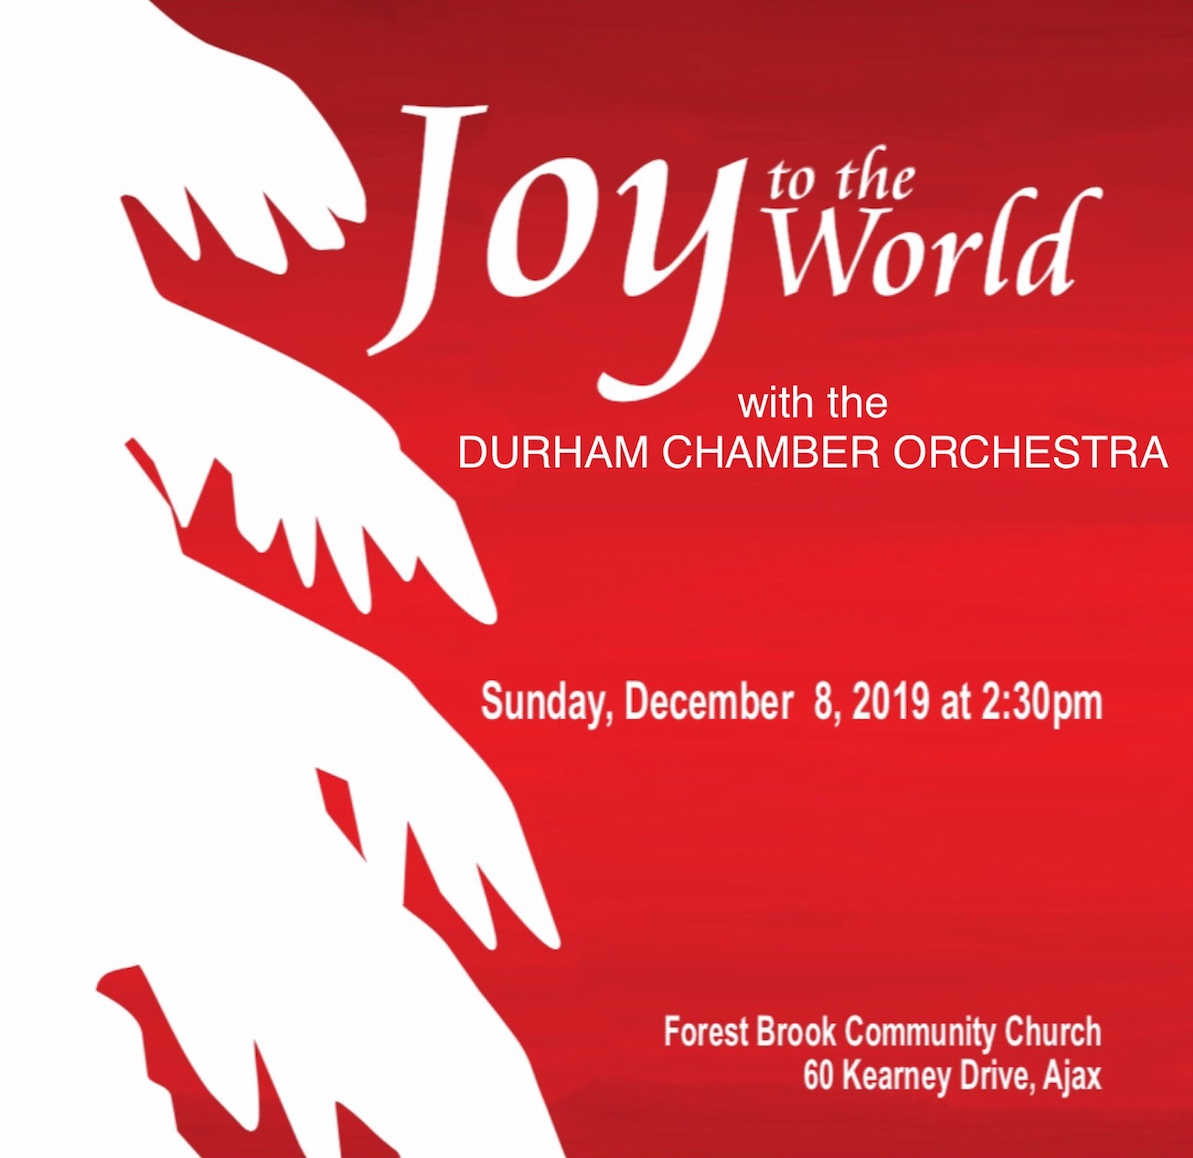 DURHAM CHAMBER ORCHESTRA & Joy to the World